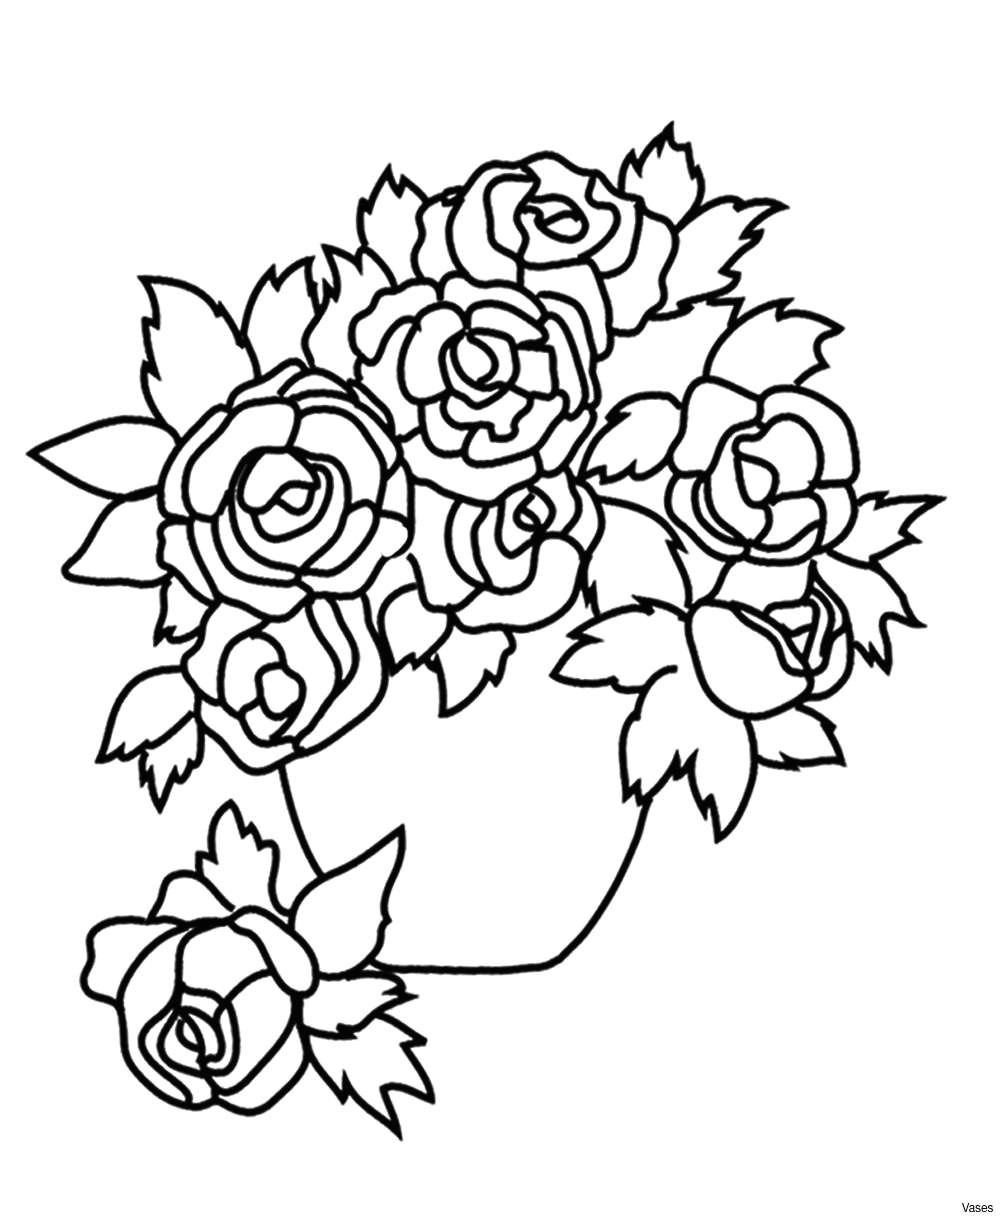 26 drawing of flowers antique drawing for kids to colour beautiful cool coloring printables 0d